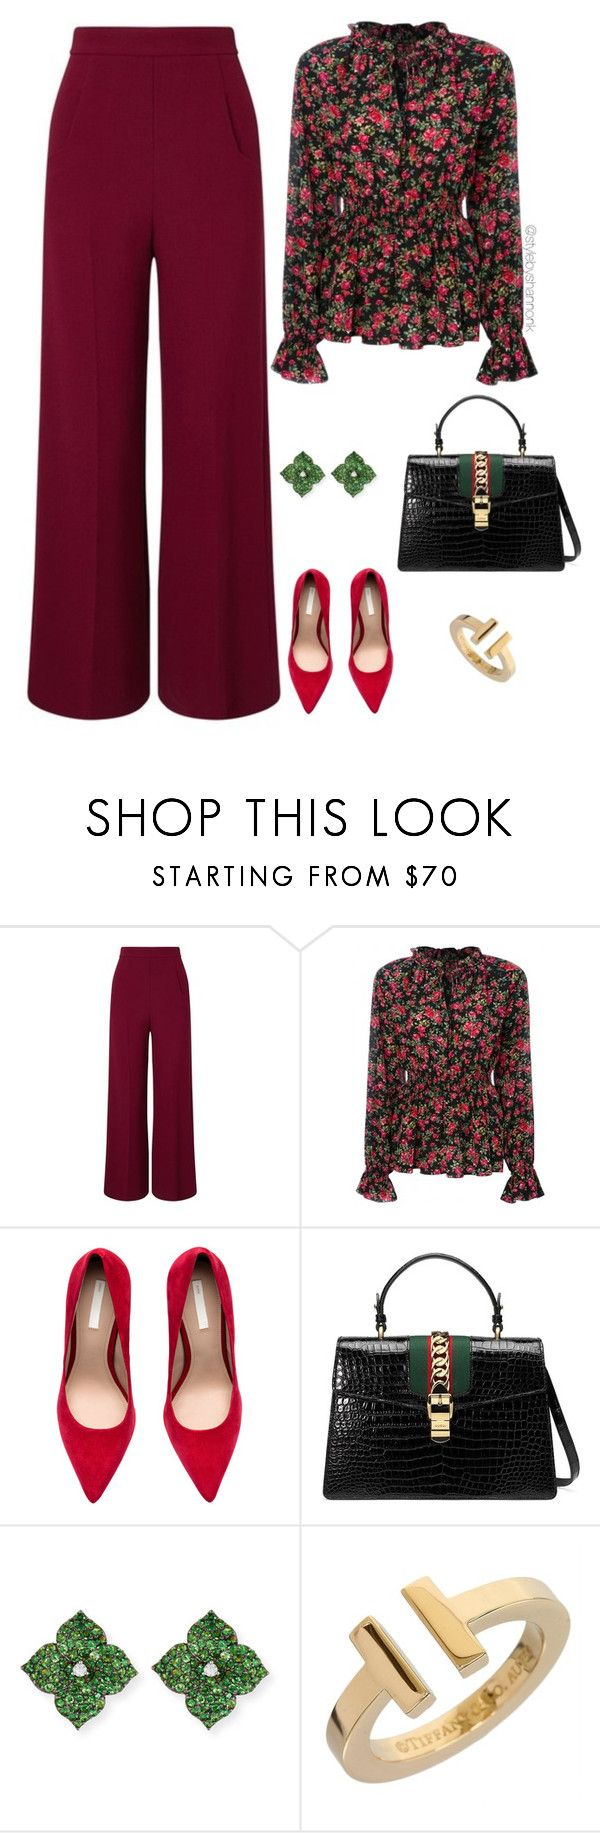 """""""Work Wear"""" by stylebyshannonk ❤ liked on Polyvore featuring Roland Mouret, Dolce&Gabbana, Gucci, Piranesi and Tiffany & Co."""